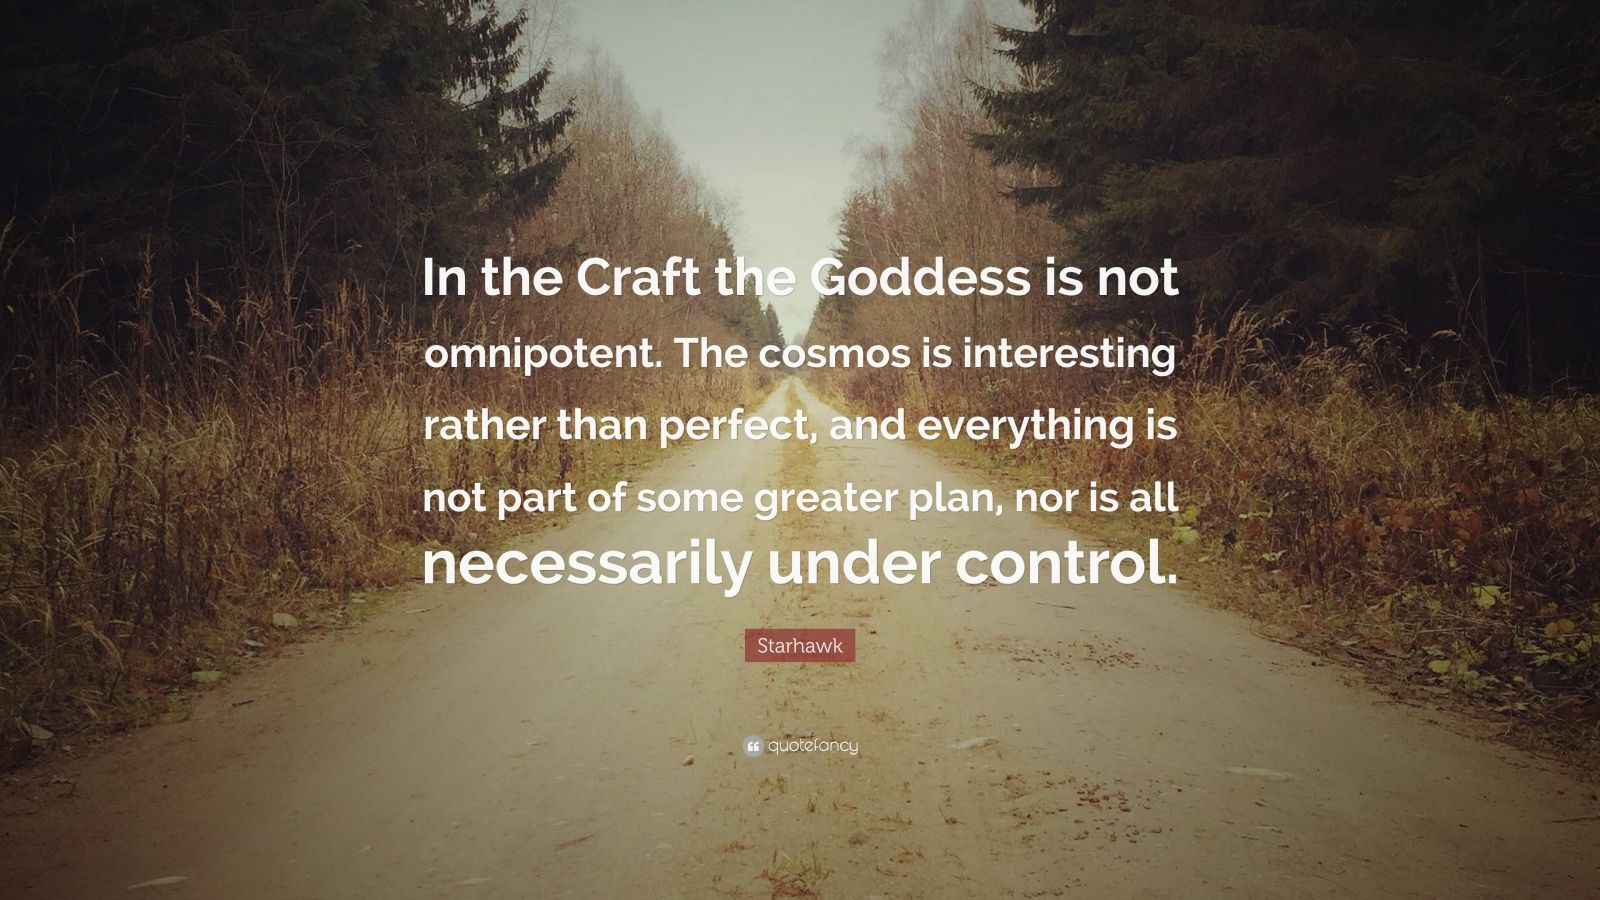 """Starhawk Quote: """"In the Craft the Goddess is not omnipotent. The cosmos is interesting rather than perfect, and everything is not part of some greater plan, nor is all necessarily under control."""""""